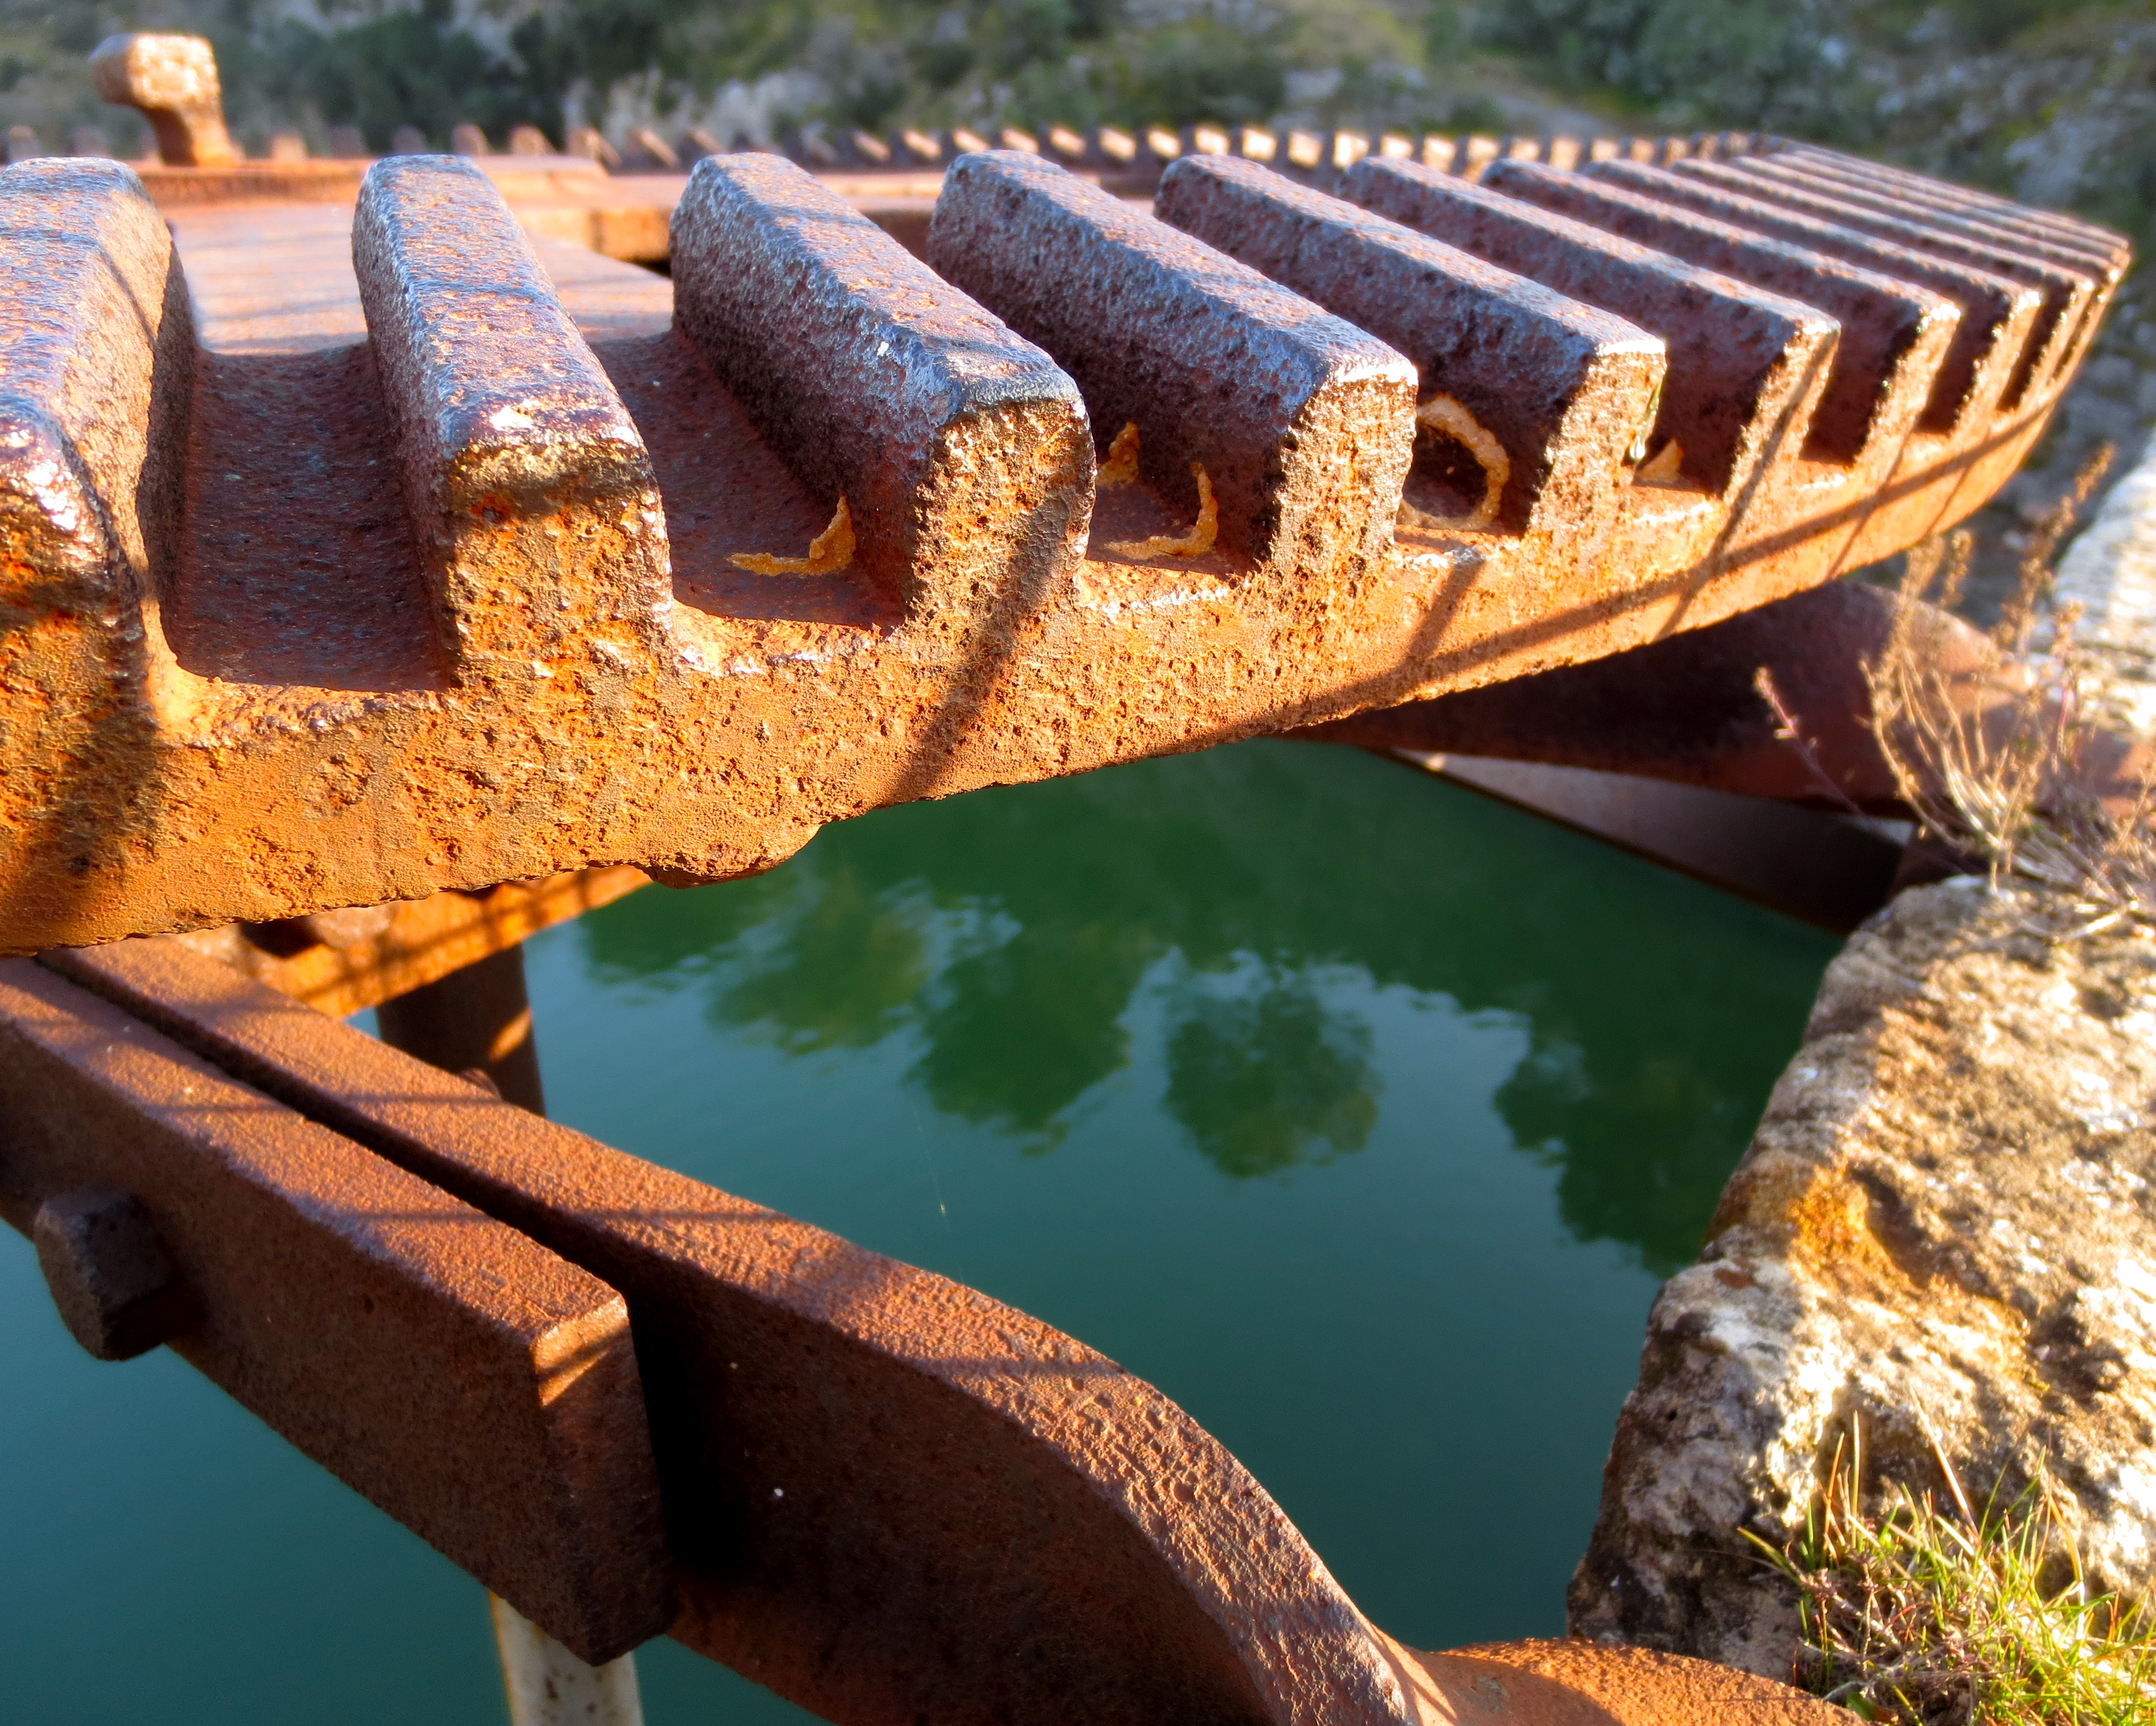 Rust and water